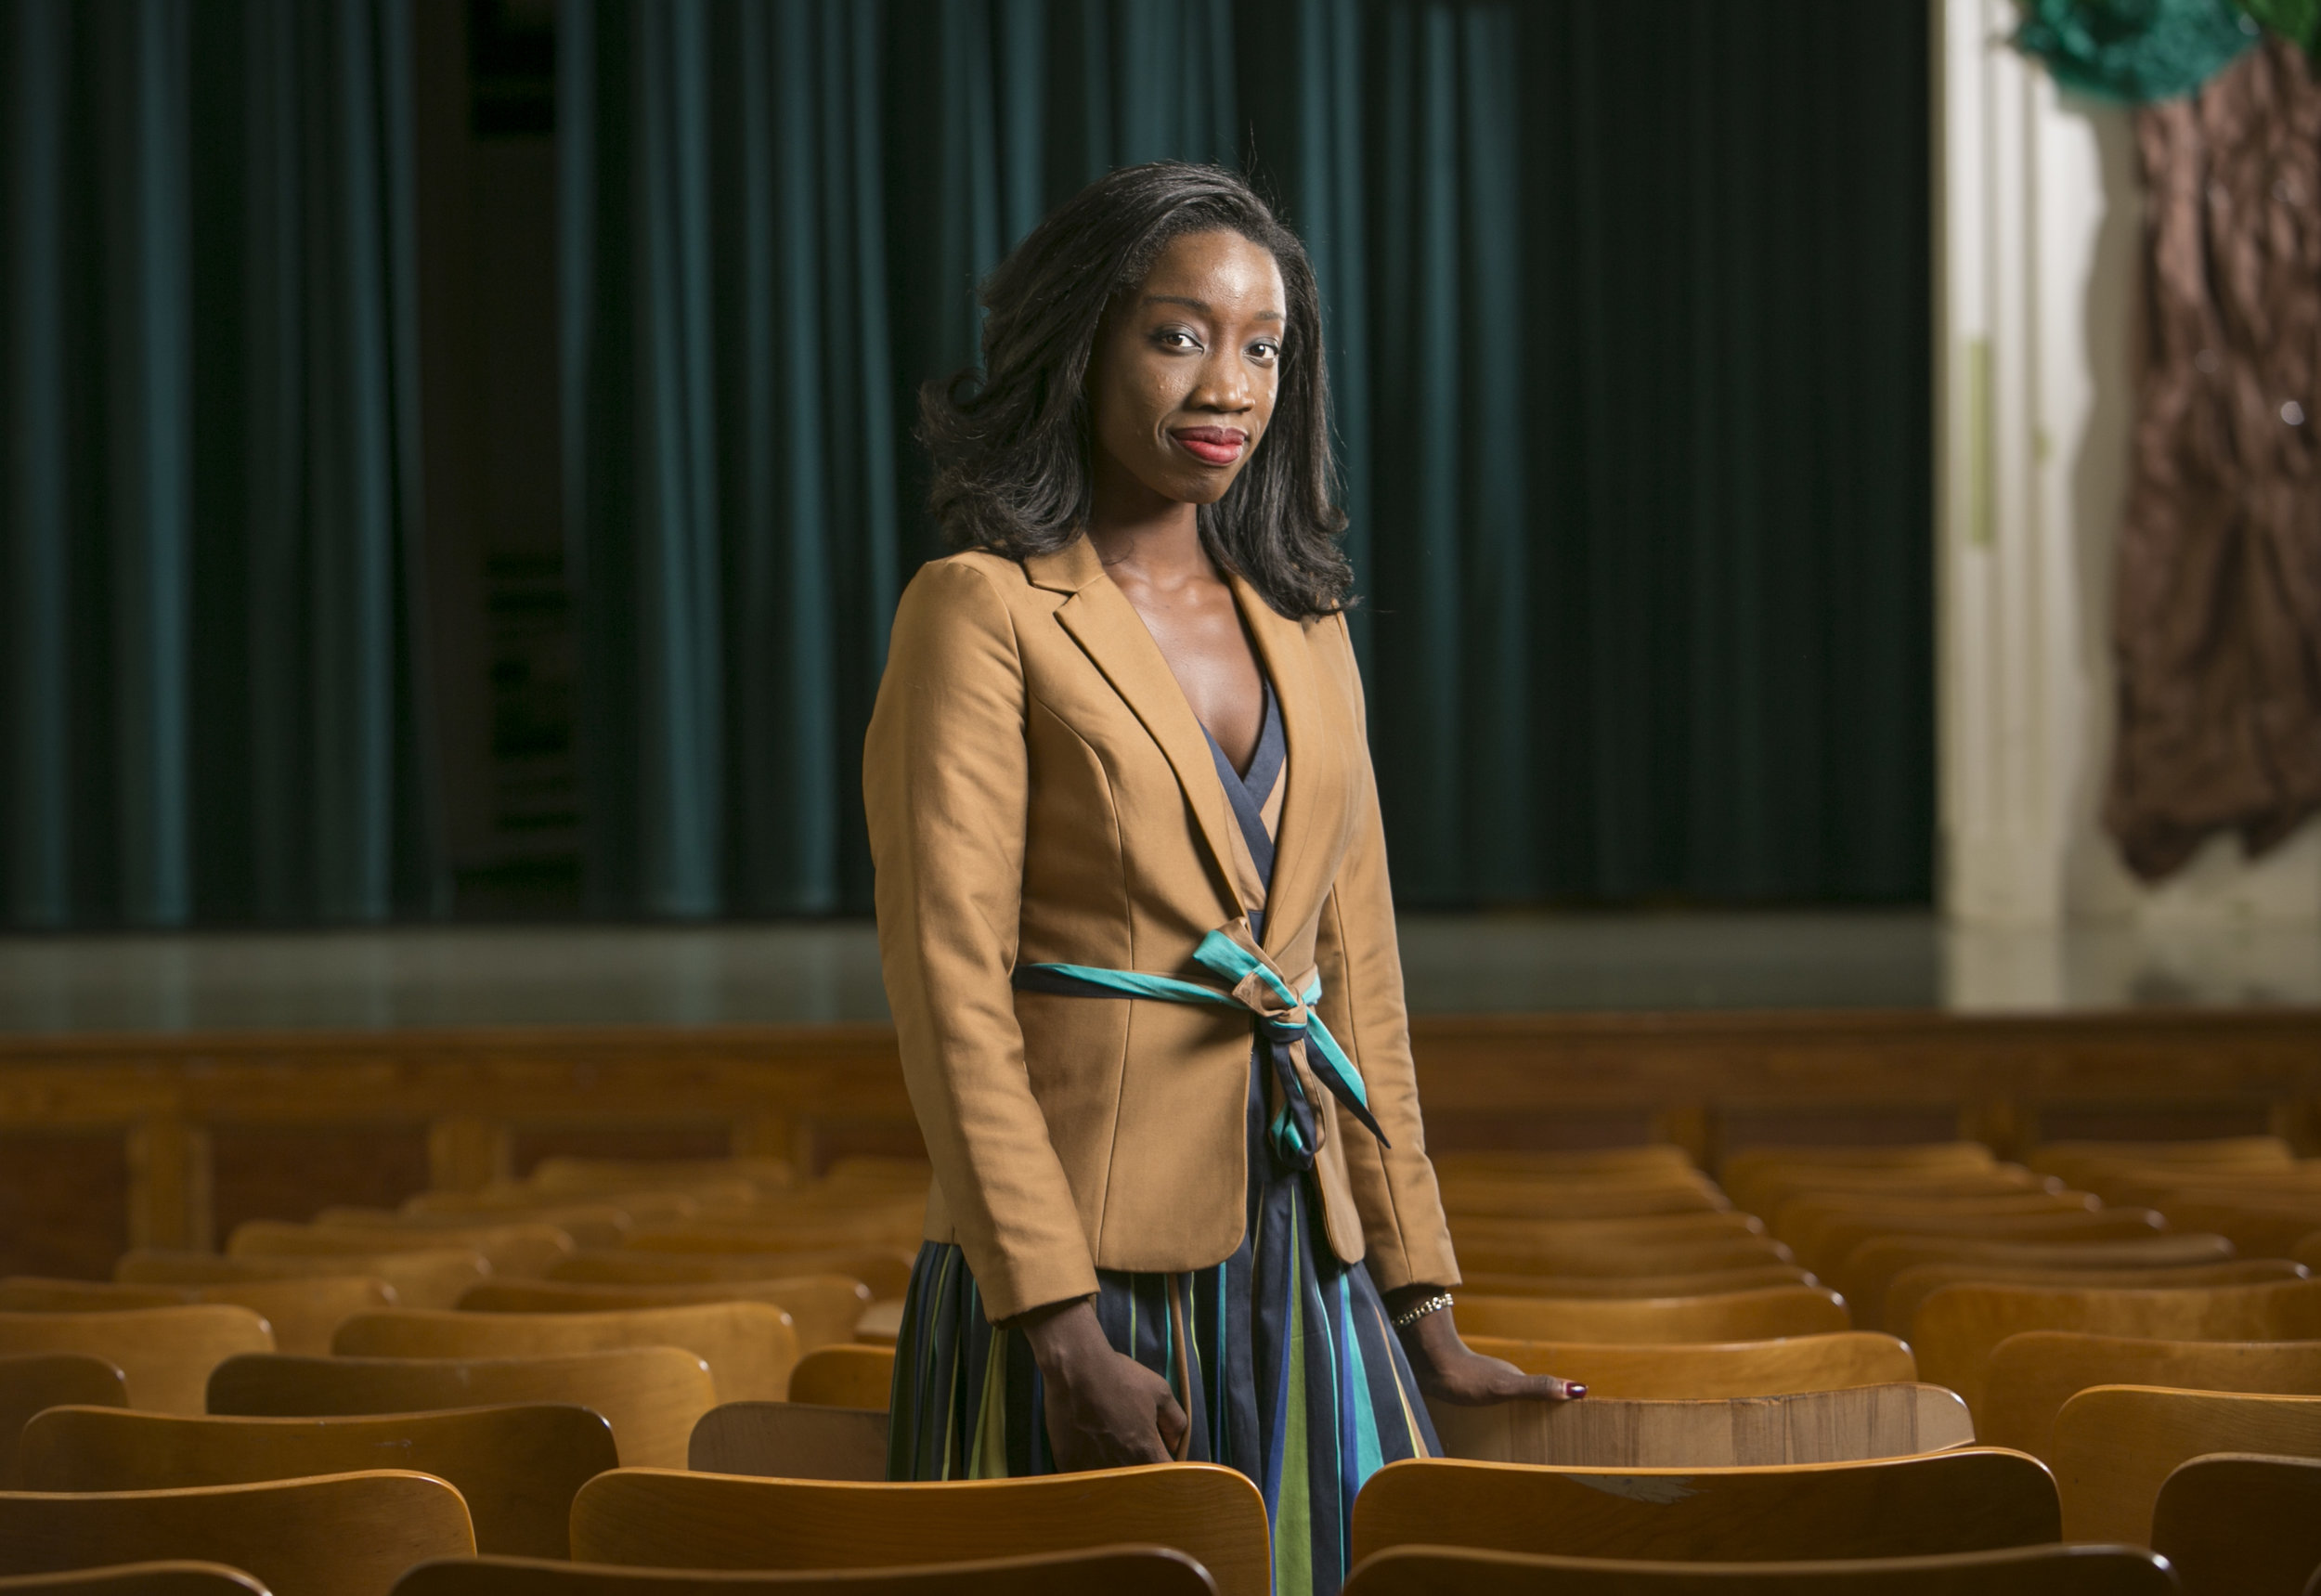 "Sally A. Nuamah - Short Bio Sally A. Nuamah is an award-winning scholar, advocate, and filmmaker whose work explores issues of race, gender, education policy, and political behavior. She completed her Ph.D. in political science at Northwestern University in June 2016. Currently, she is a tenure-track professor at the School of Education and Social Policy at Northwestern University. Previously, she worked as an assistant professor at Duke University's Sanford School of Public Policy, a postdoctoral fellow at Princeton University, a Women and Public Policy fellow at the Harvard Kennedy School and a predoctoral fellow at the University of Pennsylvania. Her first book, How Girls Achieve, was released by Harvard University Press in April 2019. She is the recipient of numerous academic and public awards. Most recently, Dr. Nuamah was named Forbes Magazine ""30 under 30"" in Education, and awarded the Andrew Carnegie Fellowship, aka ""the Brainy Award."""